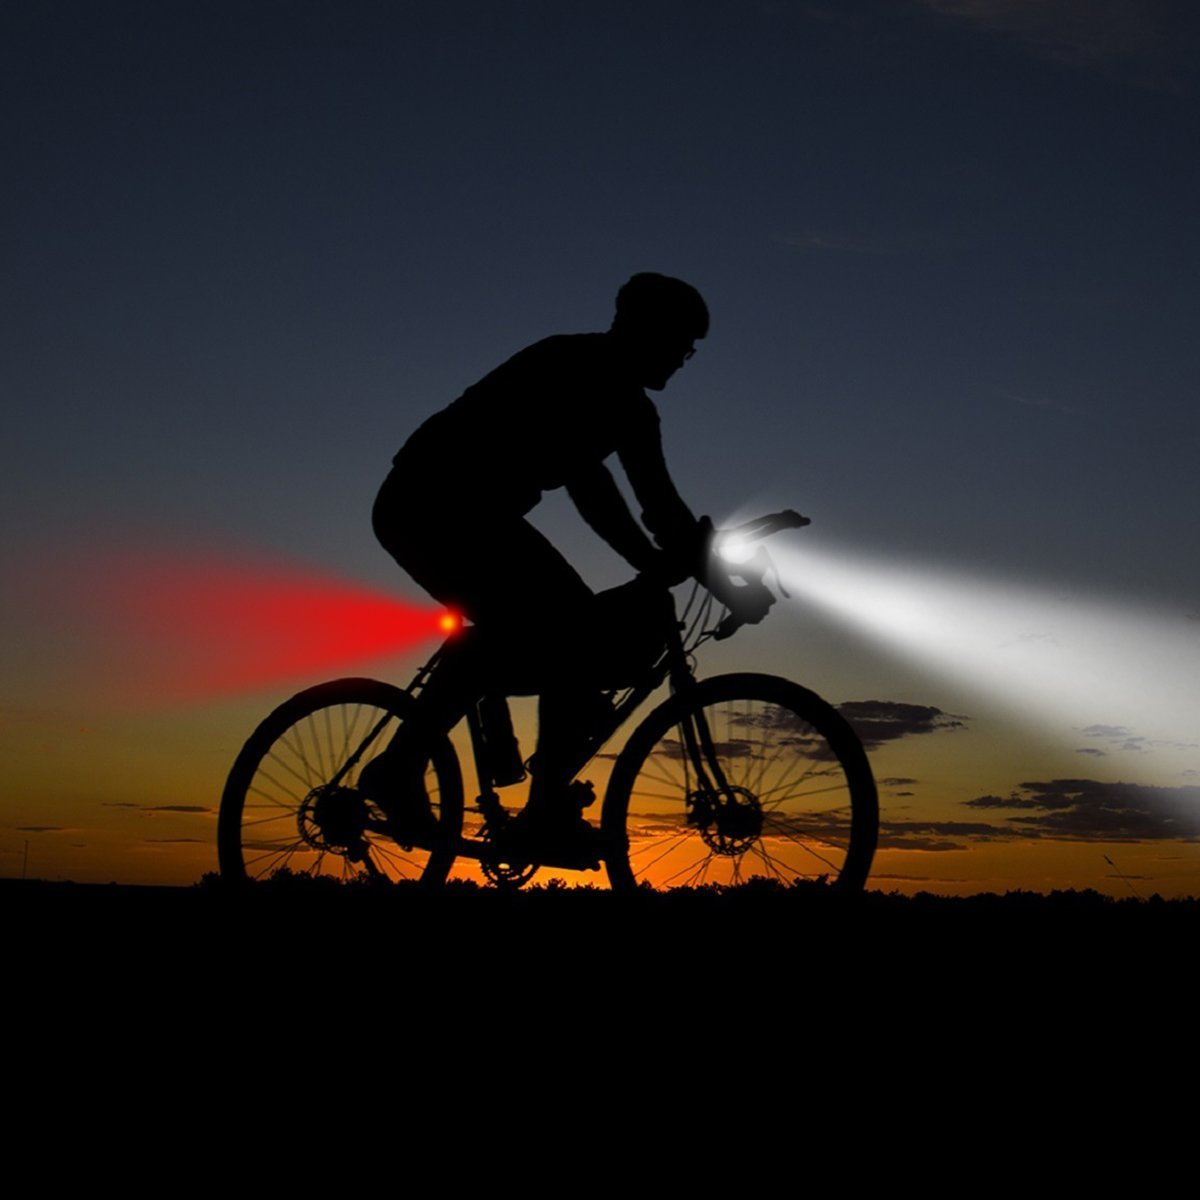 SOKLIT USB Rechargeable Bike Light Front and Rear Waterproof IPX4 Super Bright Bicycle LED Light Set 120 Lumen with 650mah Lithium Battery, 4 Light Mode Options, Including 6 Strap and 2 USB Cables by SOKLIT (Image #5)